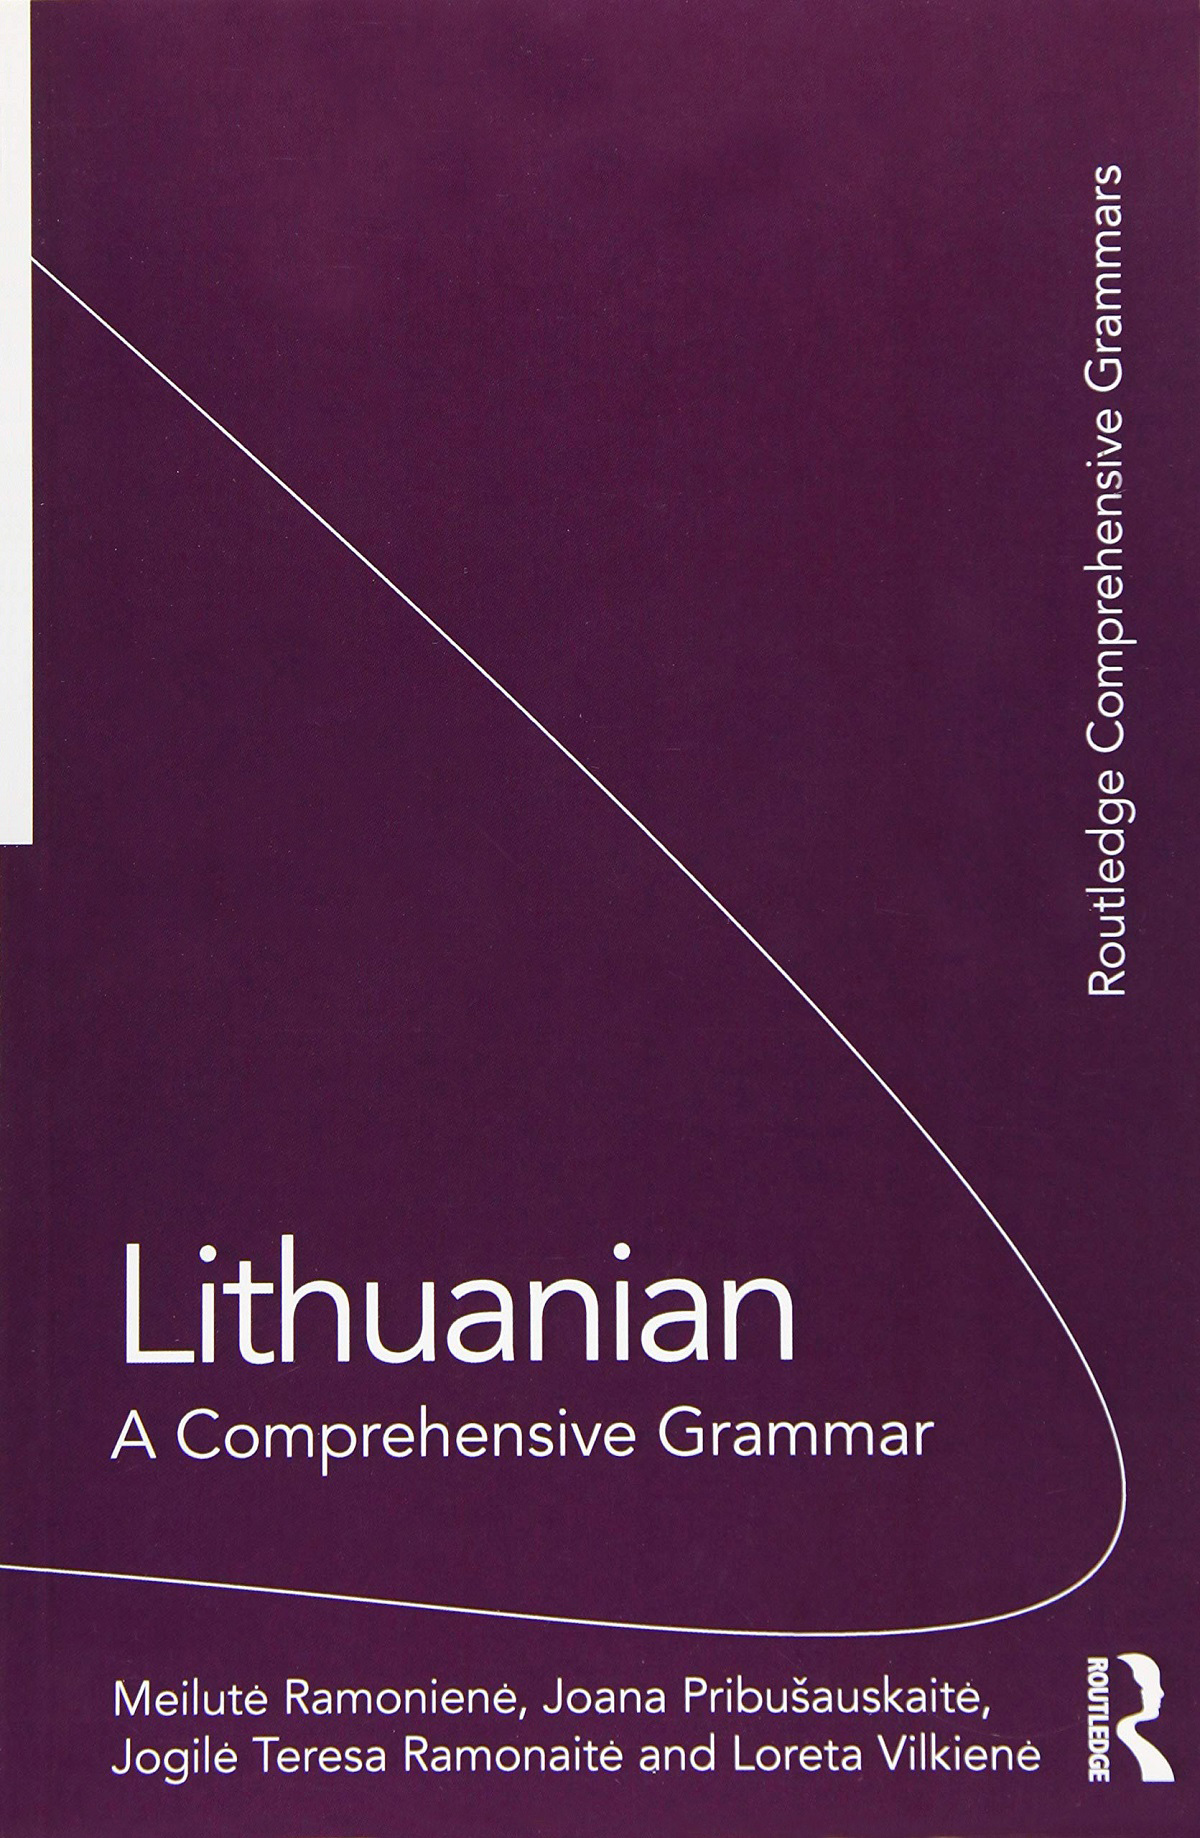 Lithuanian: A Comprehensive Grammar